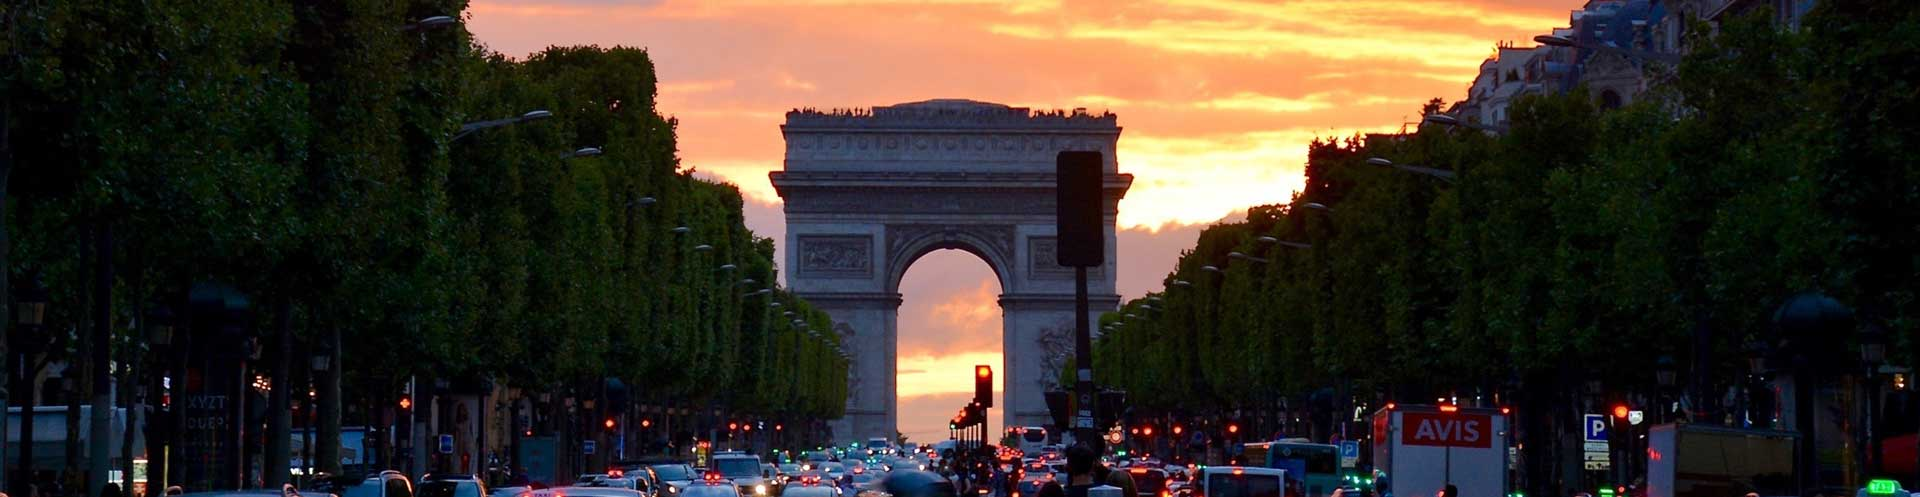 Removals to France - Arc De Triomphe